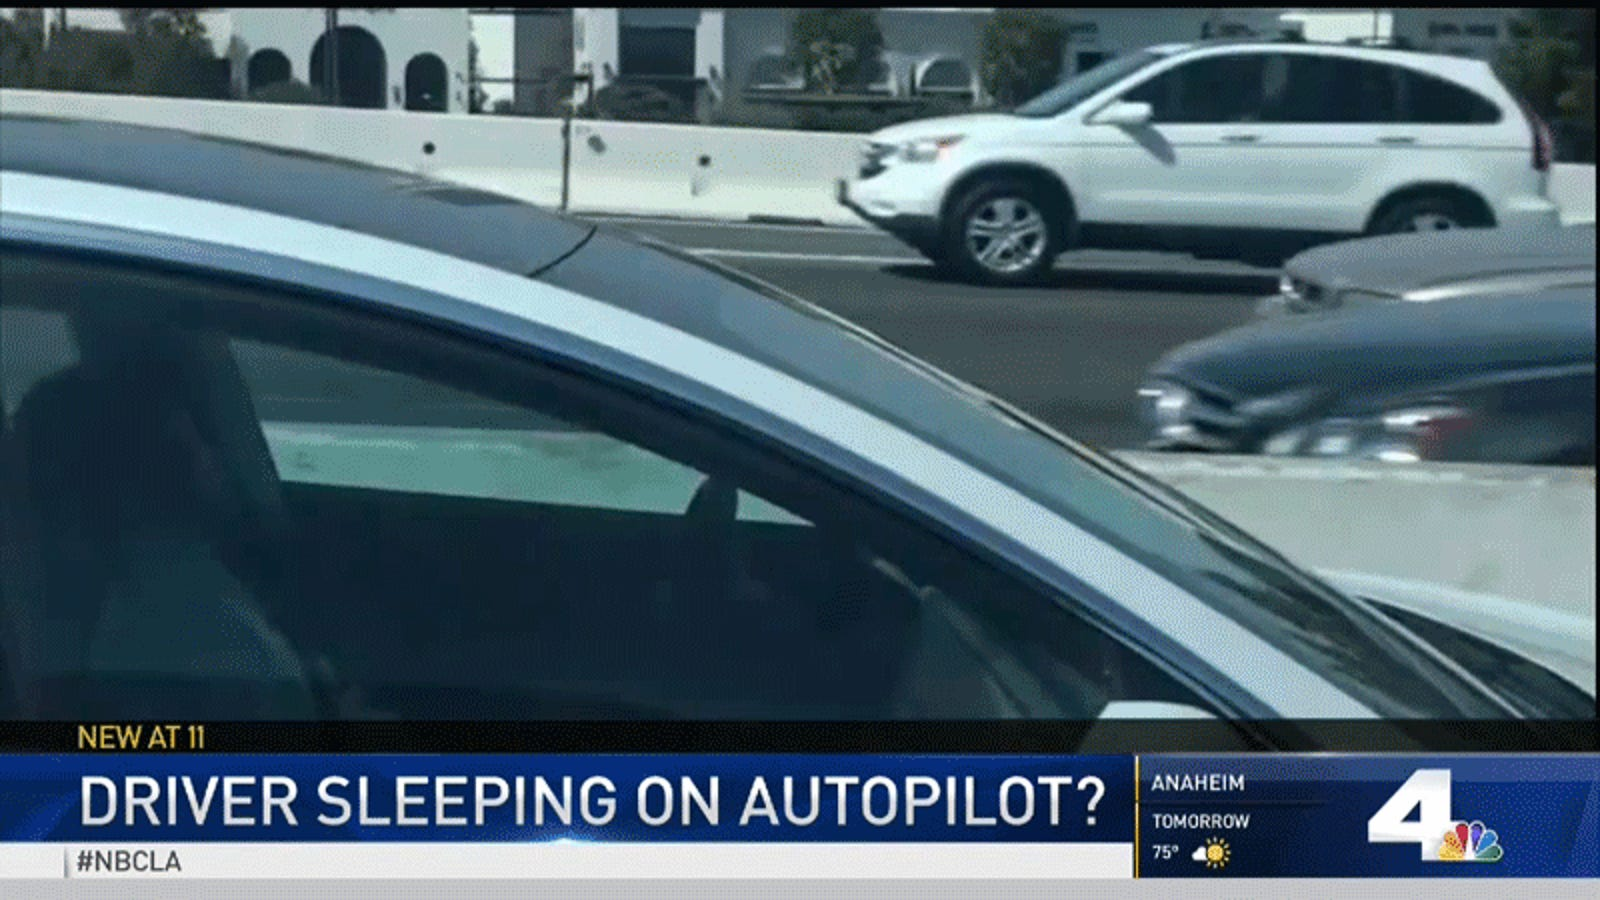 Tesla Driver Imitates Regulators by Appearing to Fall Asleep With